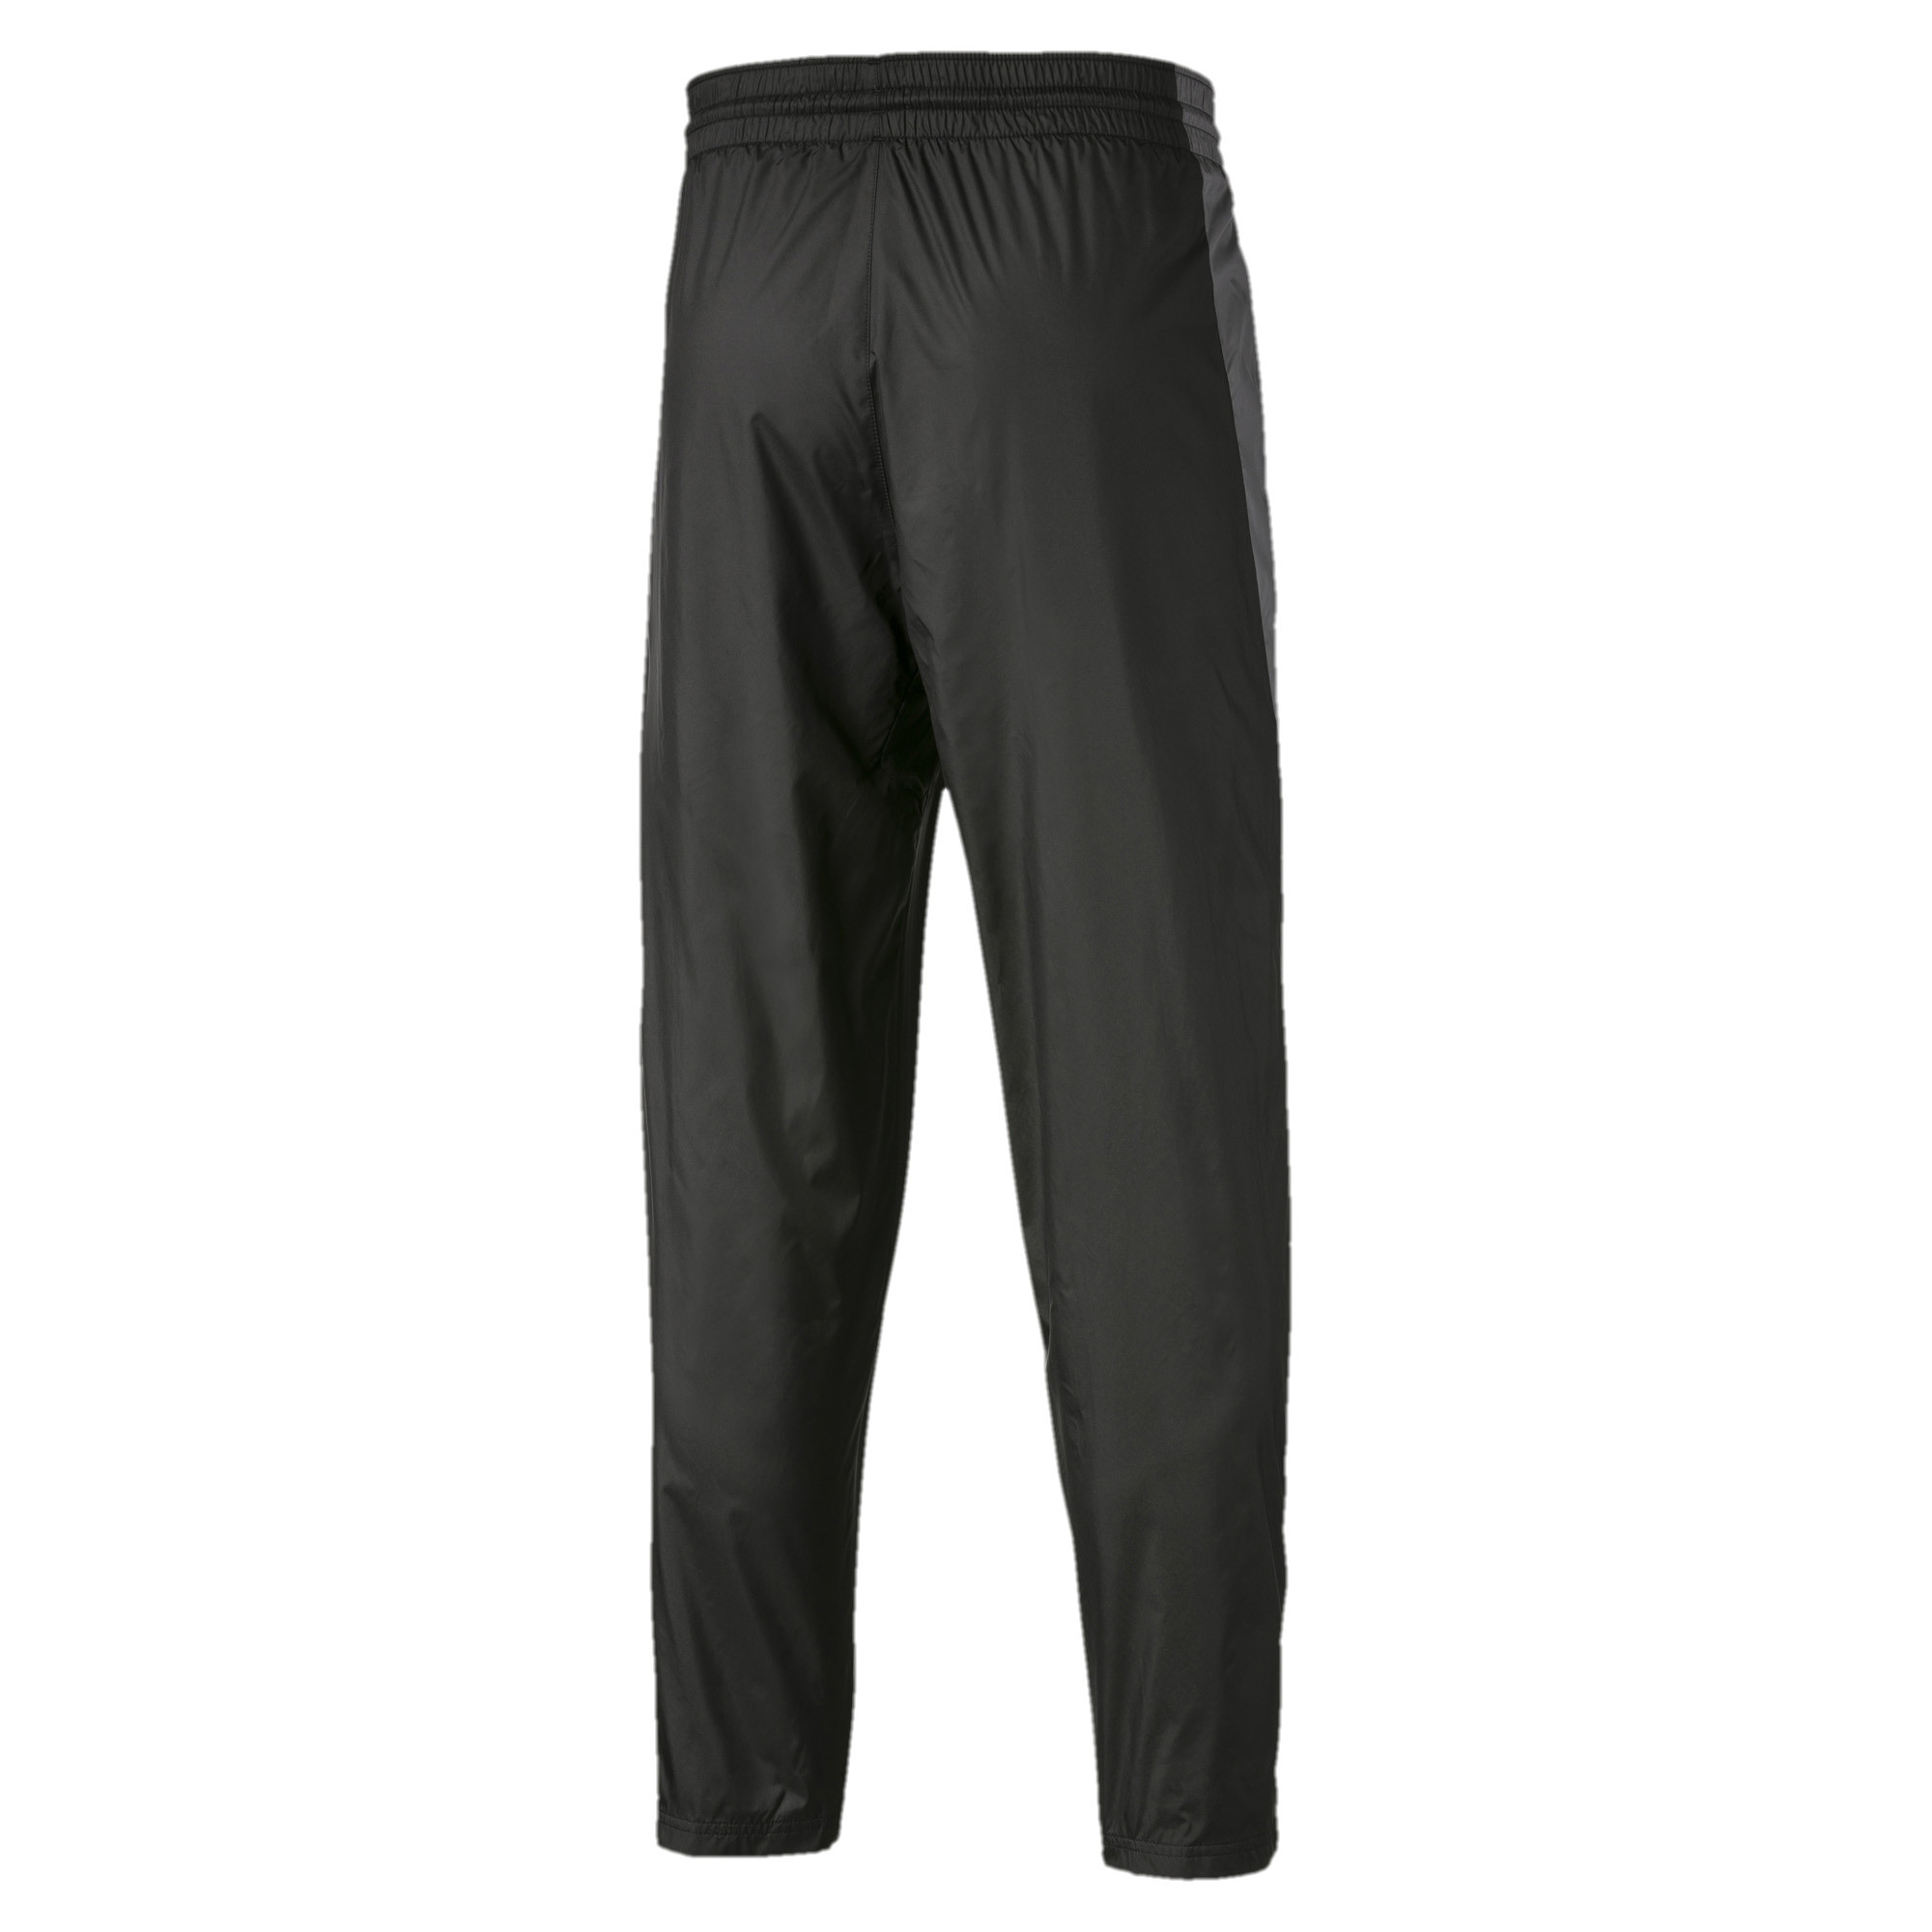 PUMA-Reactive-Men-039-s-Woven-Pants-Men-Woven-Pants-Training miniatura 3